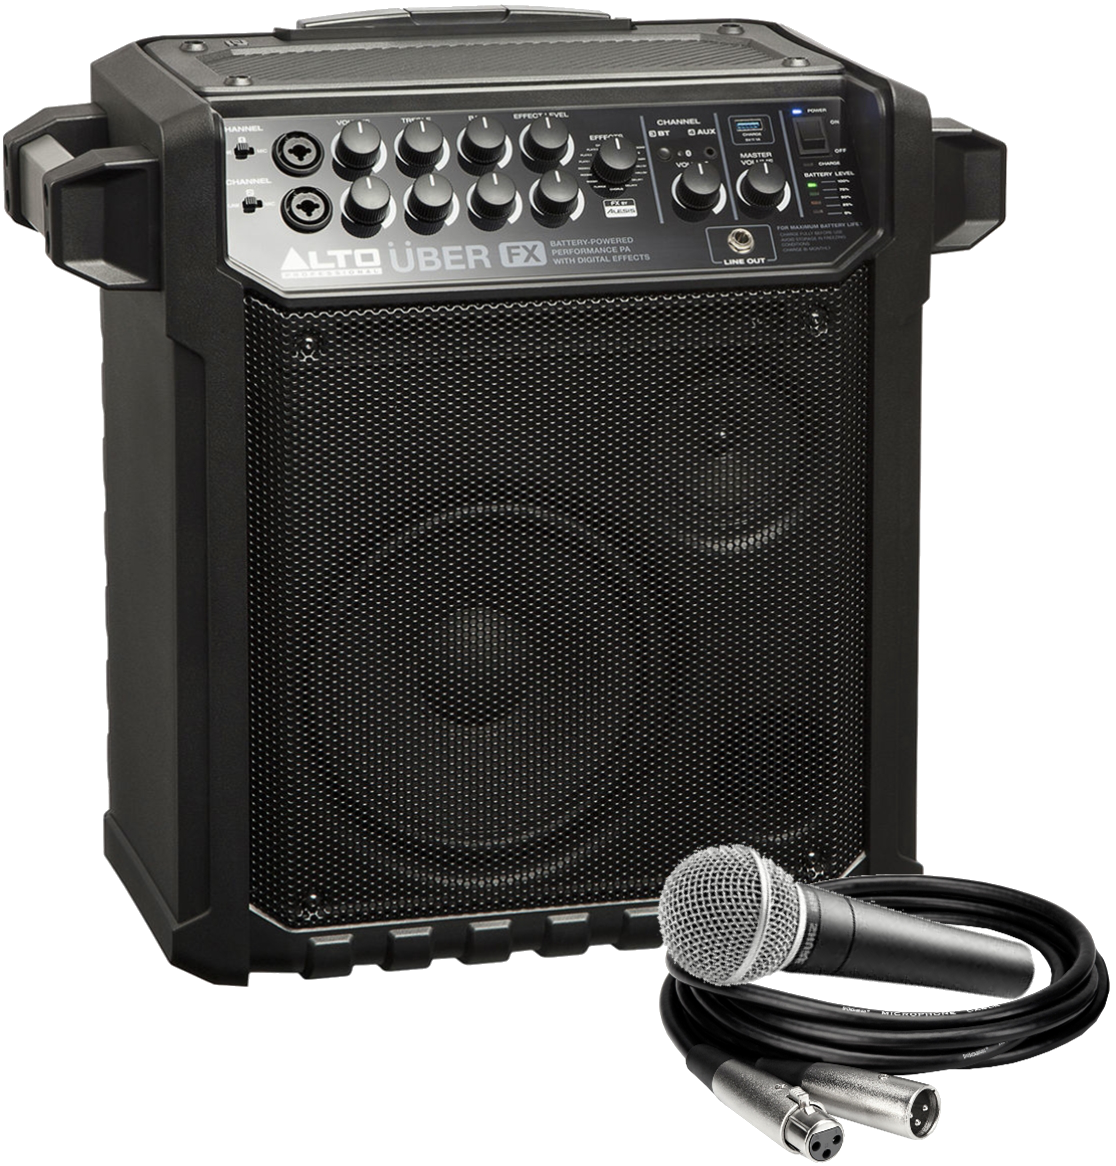 PA system rentals Nashville Tn, Jumping Hearts Party Rentals